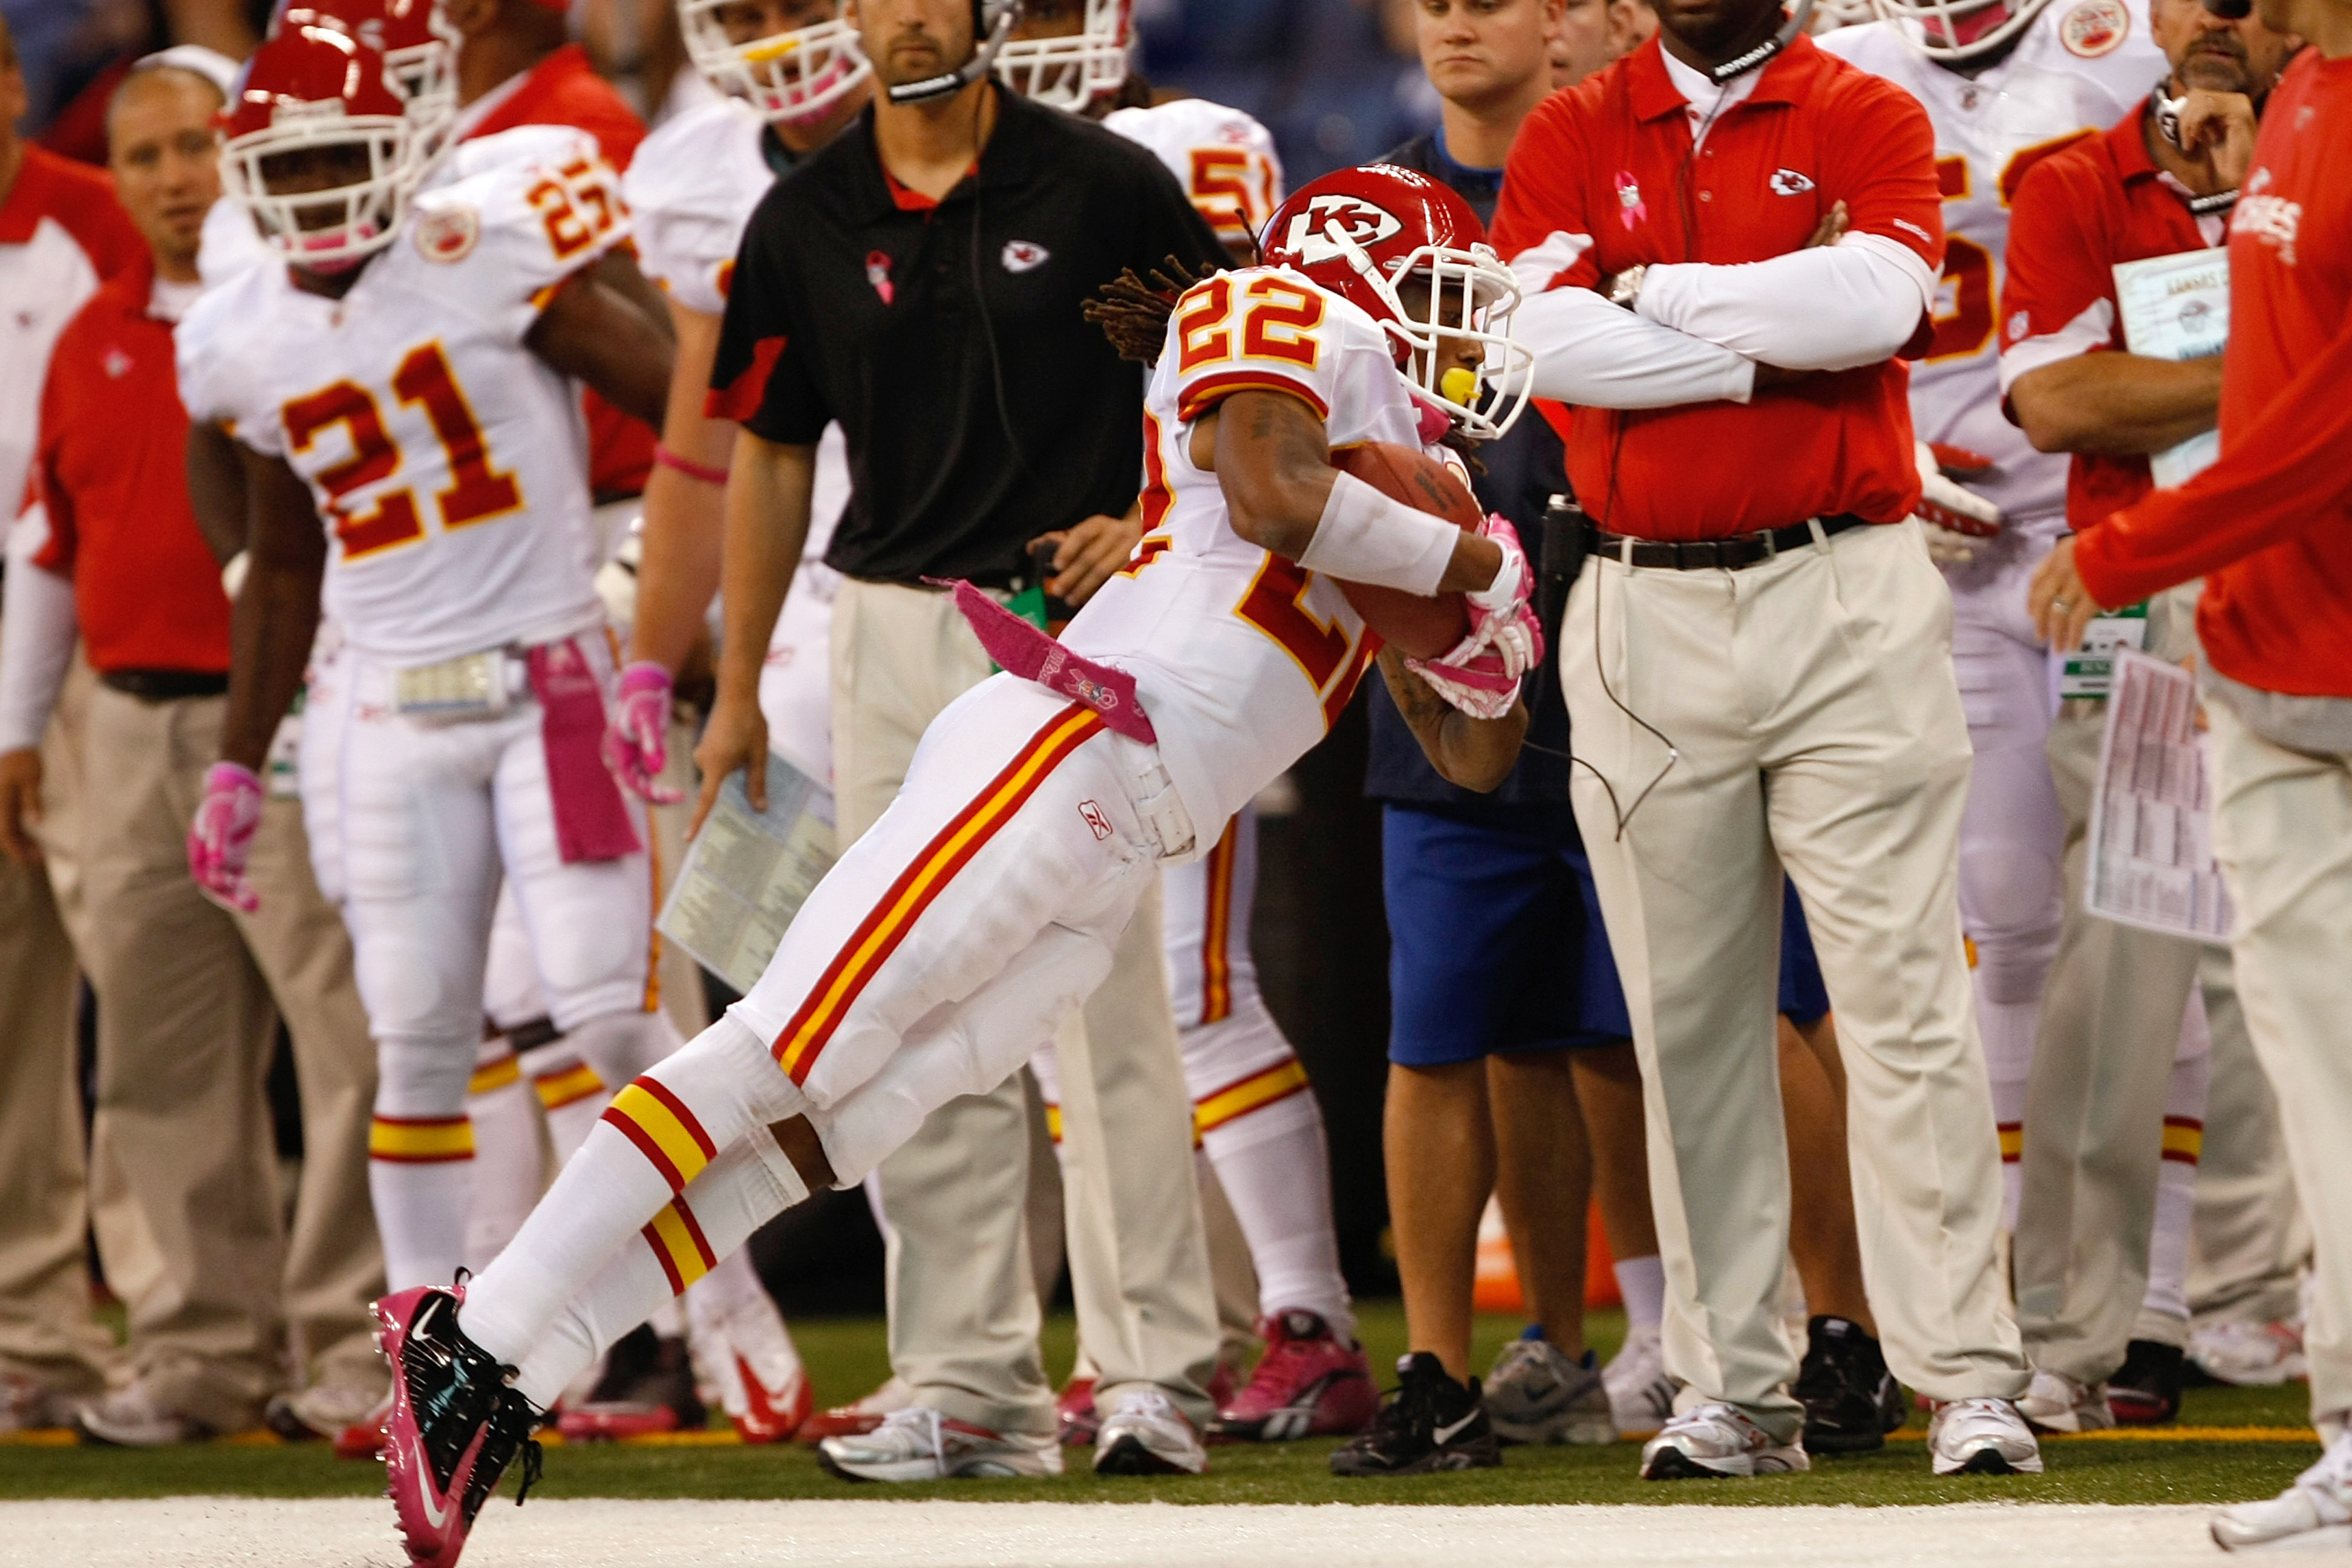 INDIANAPOLIS, IN - OCTOBER 10: Dexter McCluster #22 of the Kansas City Chiefs catches the football against the Indianapolis Colts at Lucas Oil Stadium on October 10, 2010 in Indianapolis, Indiana.  (Photo by Scott Boehm/Getty Images)